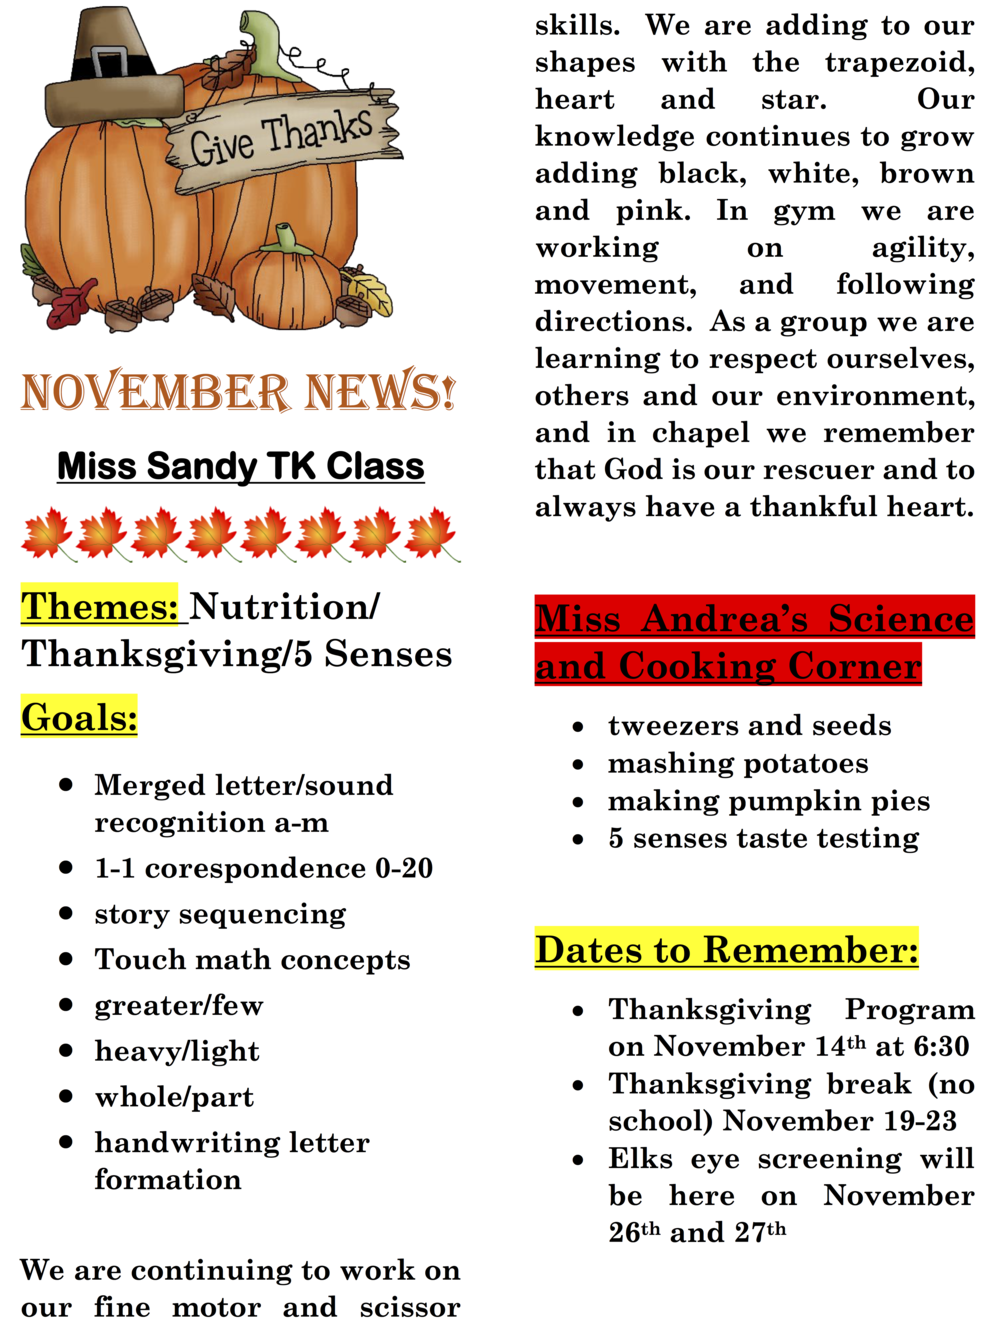 November News Miss Sandy.png